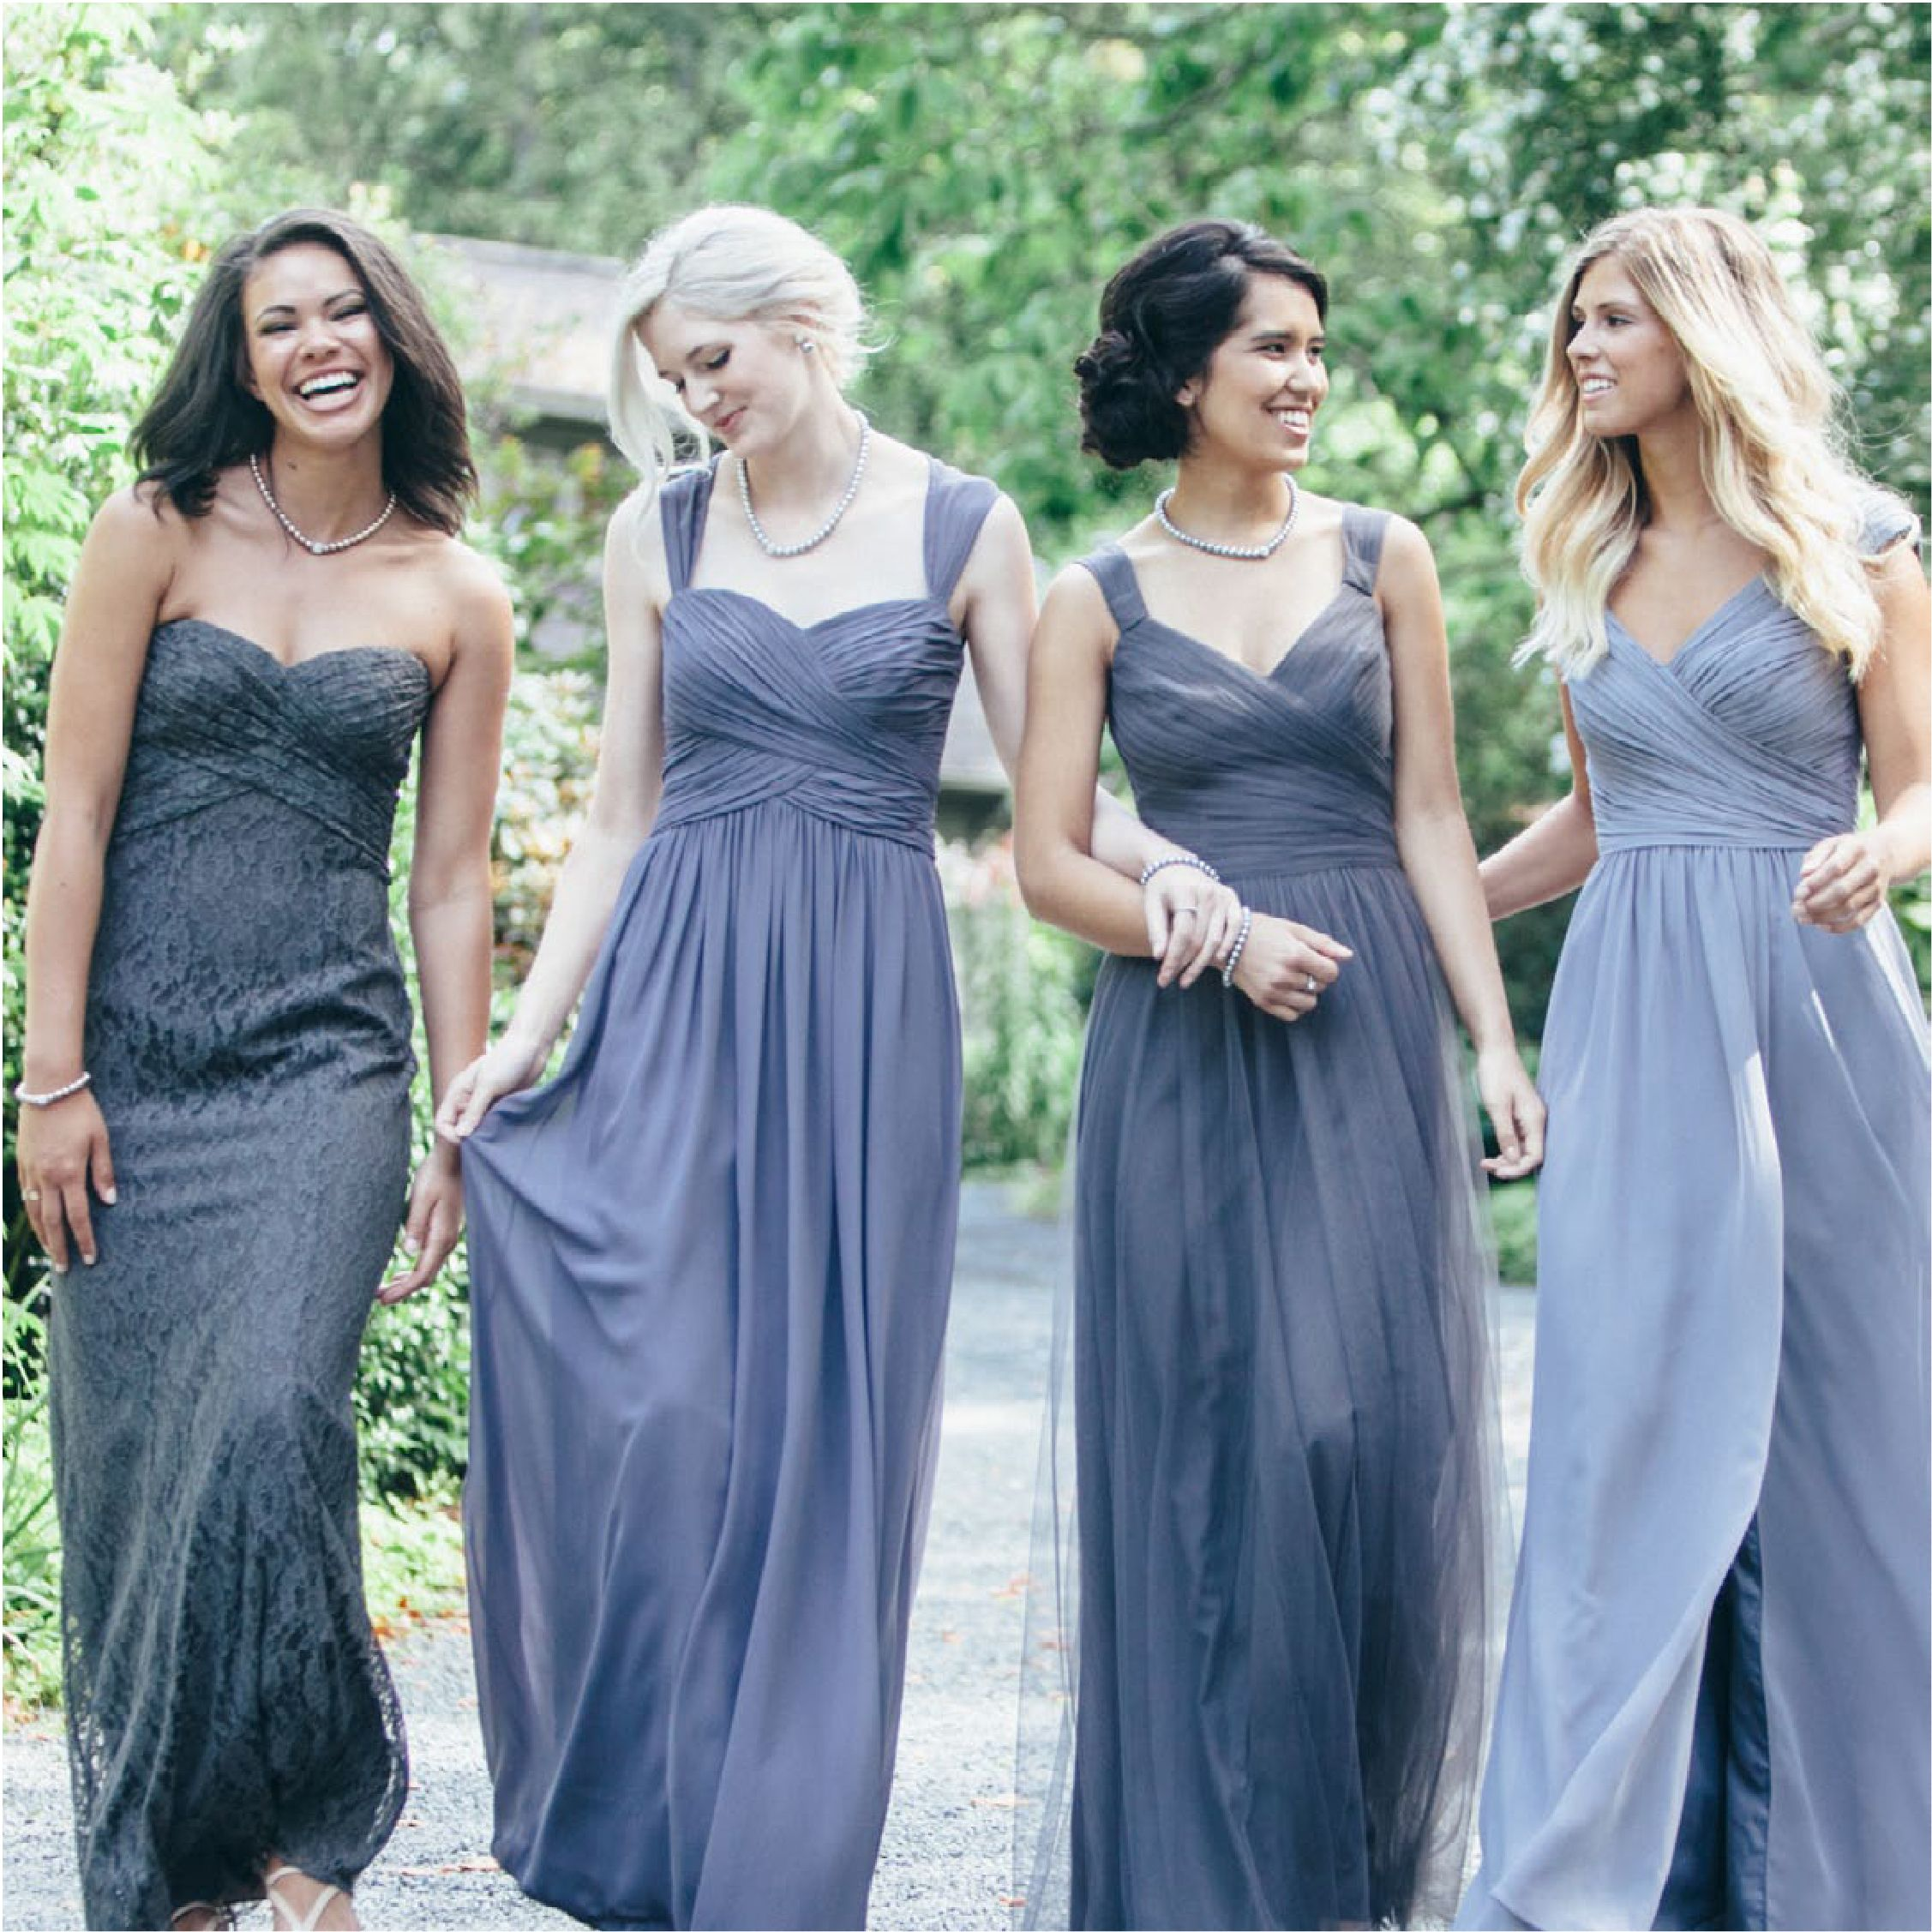 Shades of grey for yoru wedding party from David Tutera for Gather ...